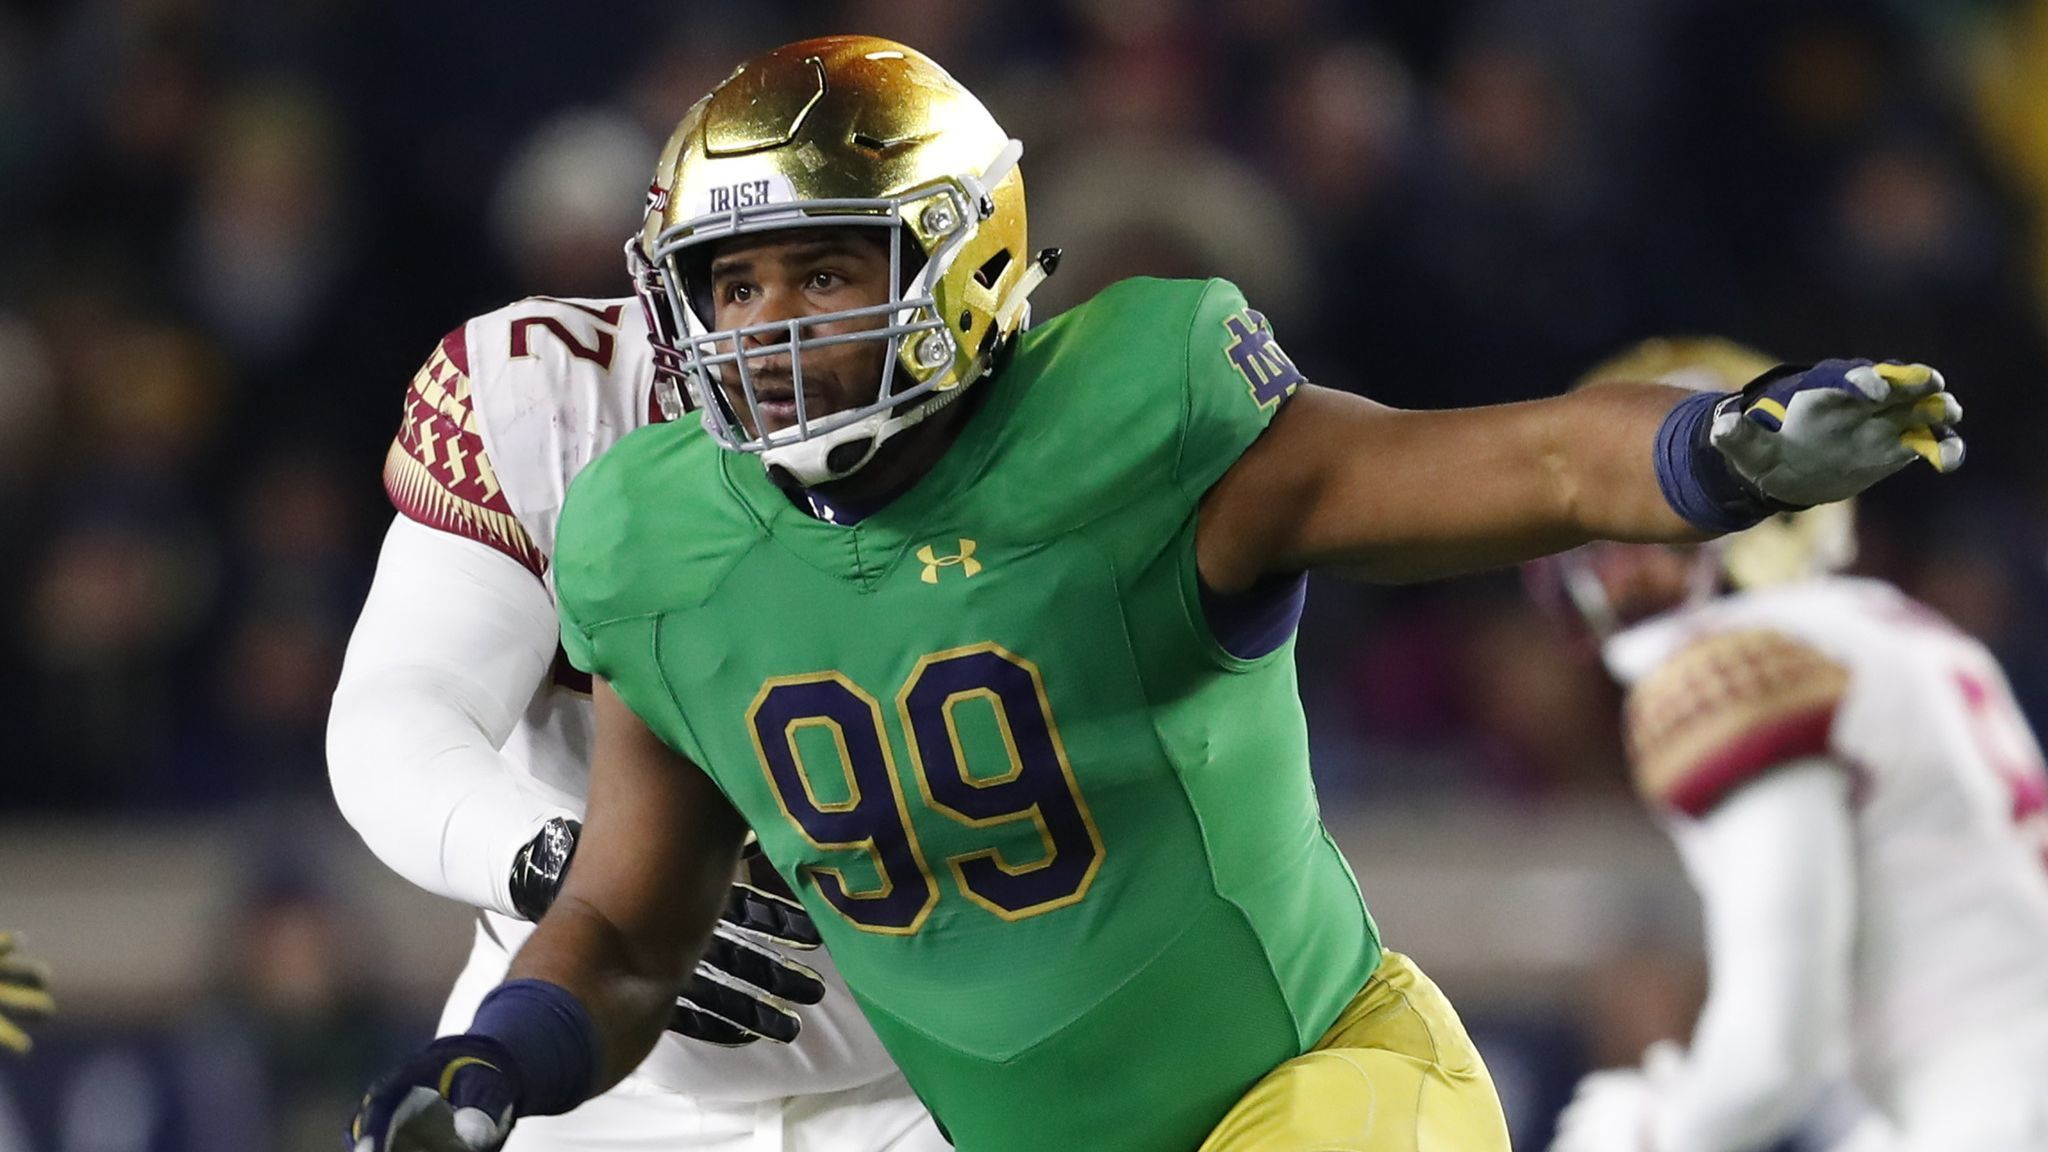 2019 NFL draft: Which local prospects — from Illinois colleges and high schools as well as Notre Dame — will hear their names called?